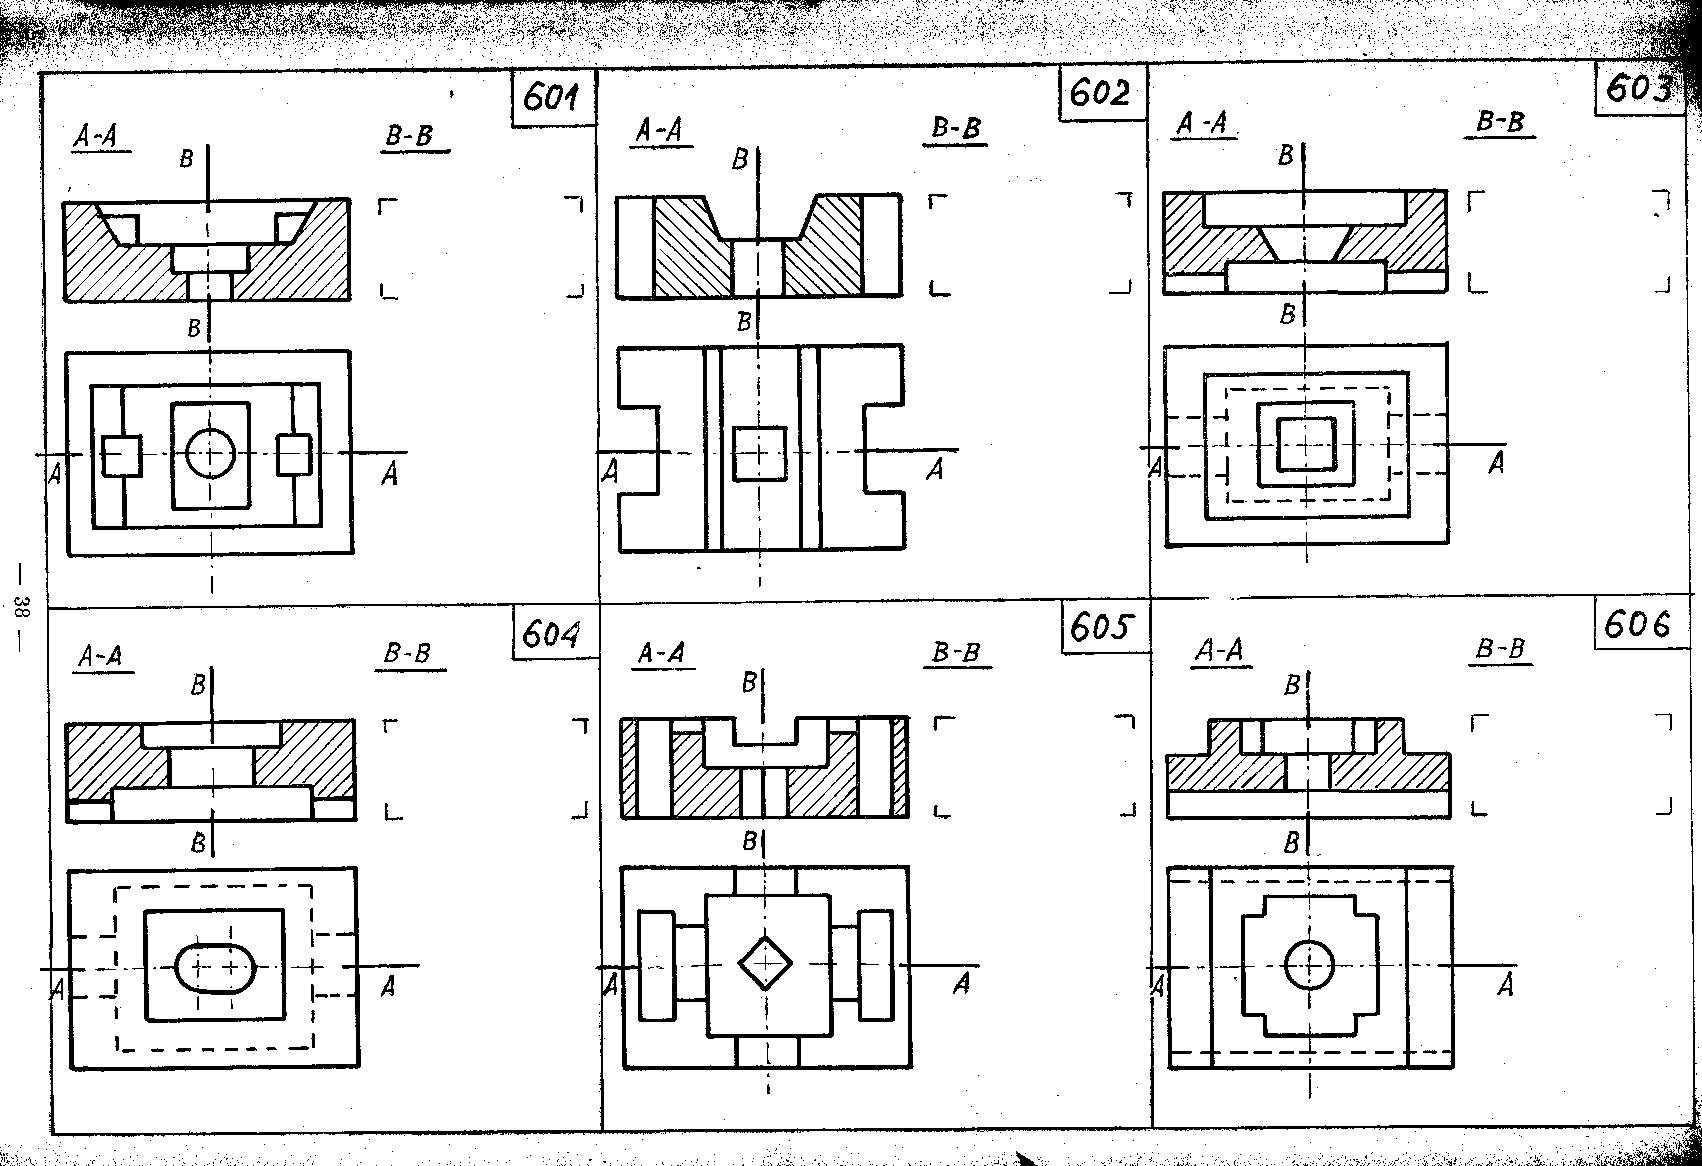 3d cad assignment p1 p2 etc P7 and p8 can be covered by a fifth assignment which could ask for increased from dt particularly the use of 3d cad systems which generate criteria covered assignment title scenario assessment method p1, p2 producing engineering sketches learners have been asked to produce sketches.